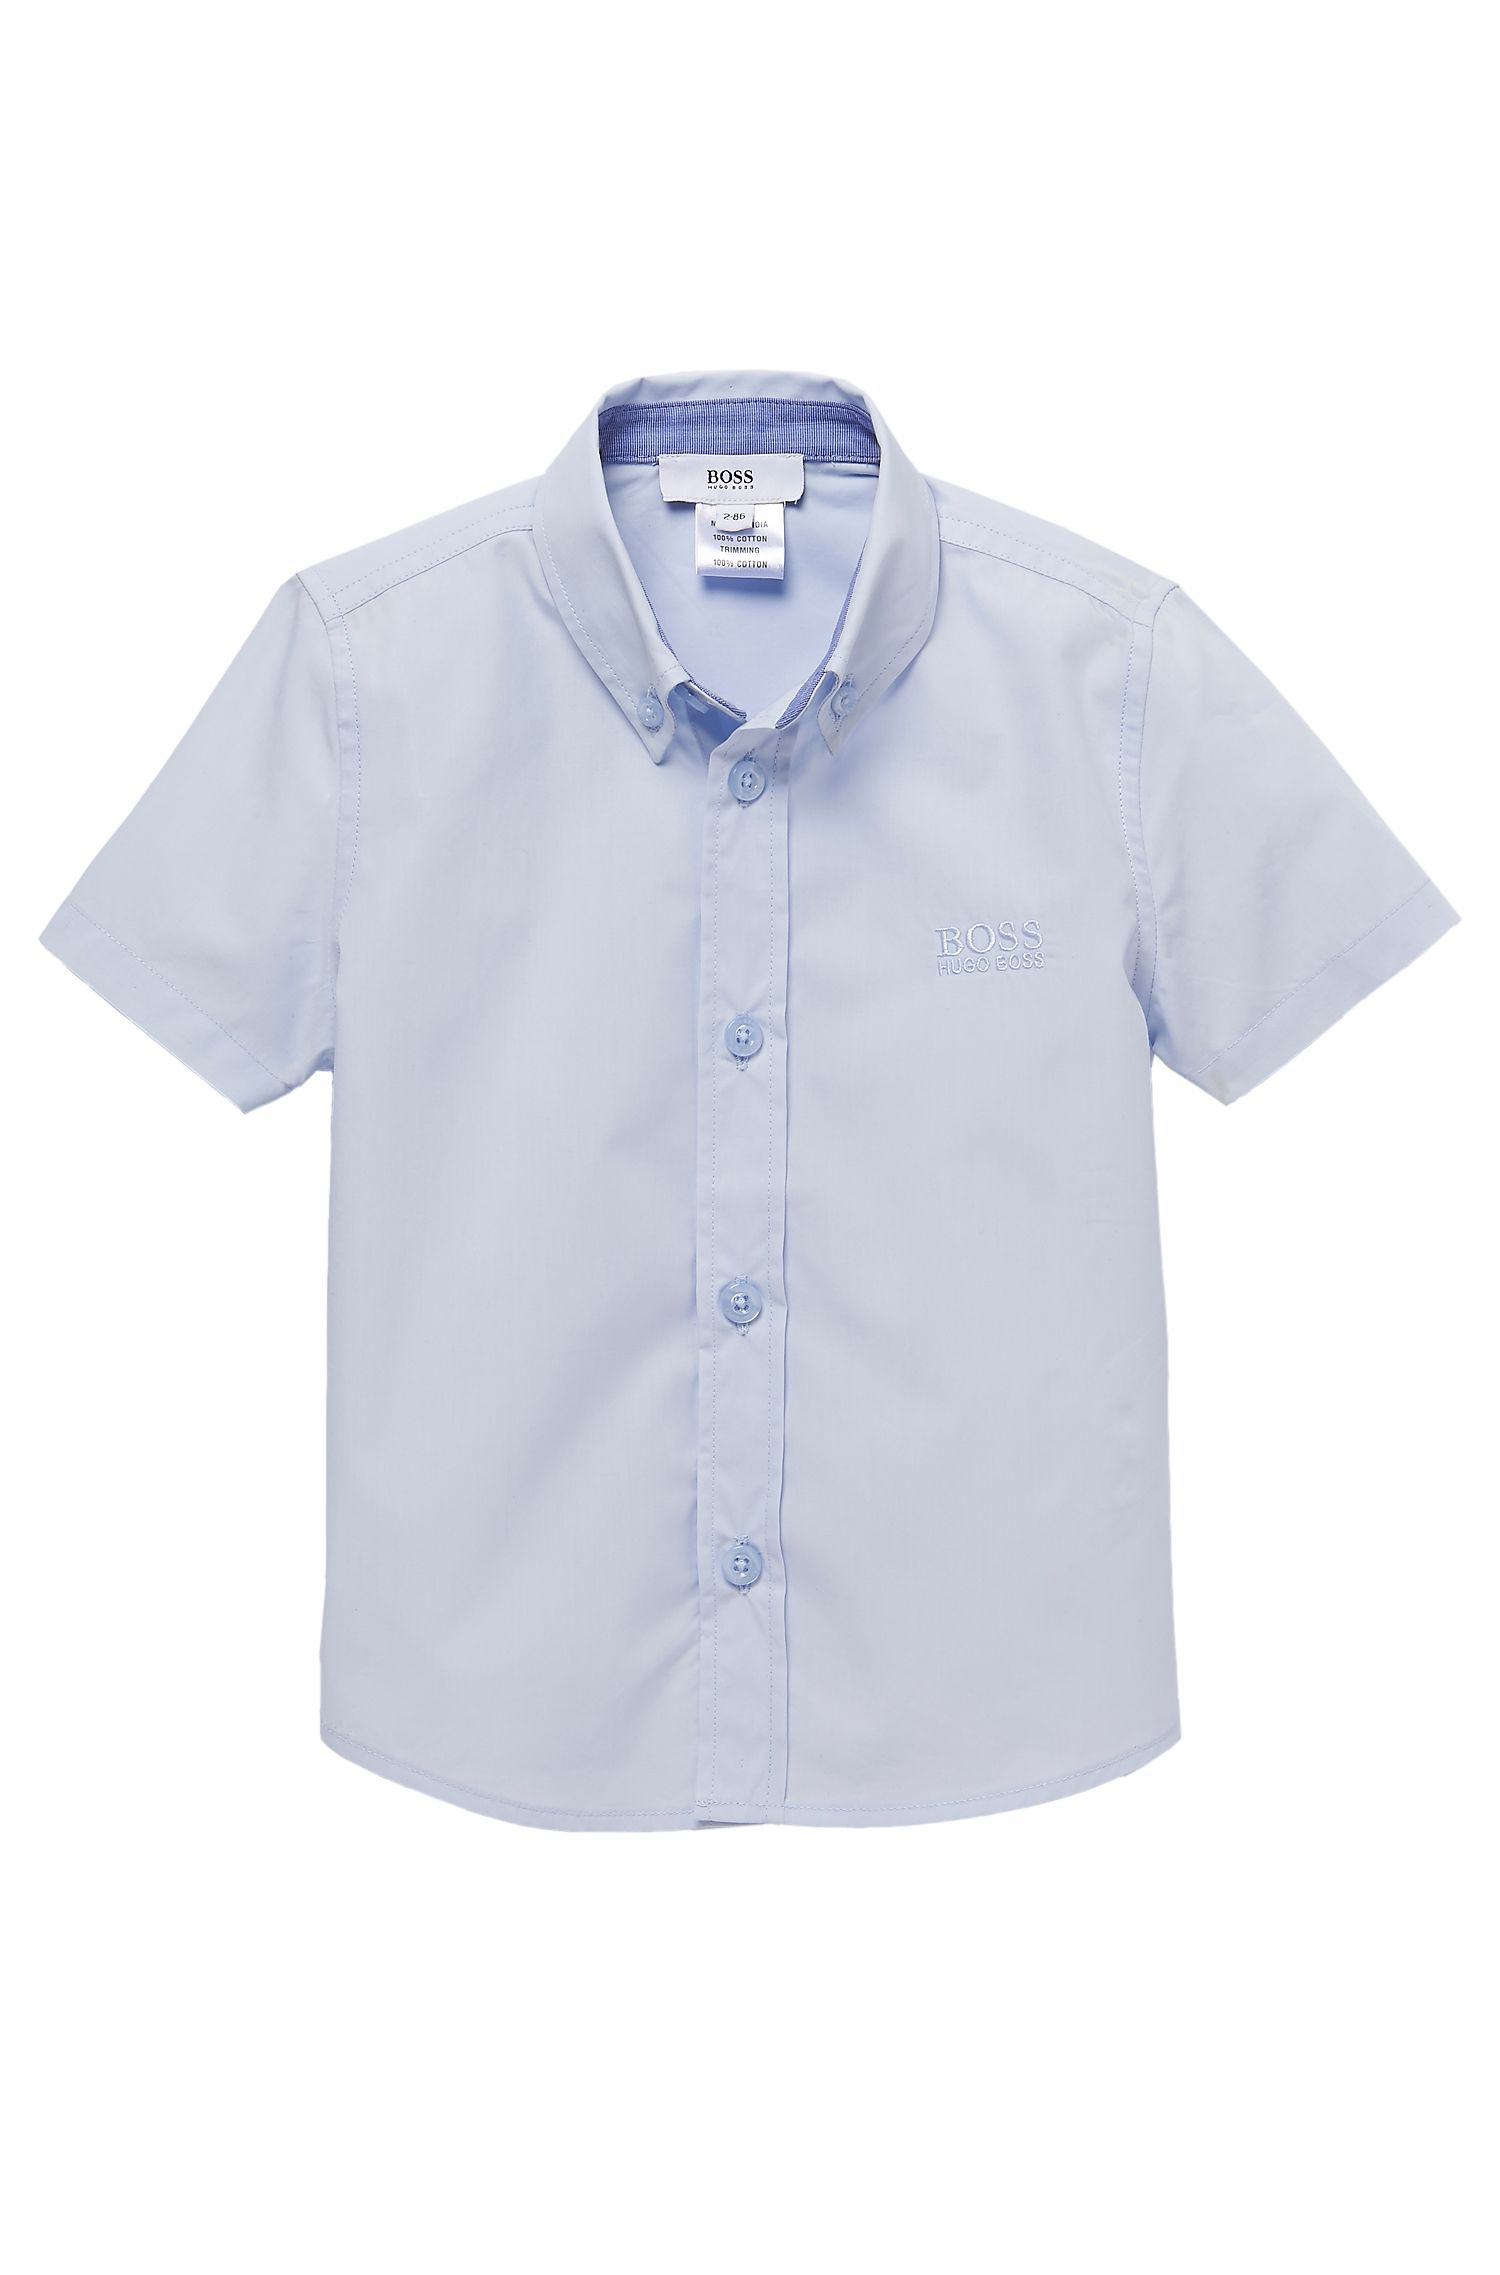 'J05290' | Toddler Cotton Short-Sleeved Button Down Shirt